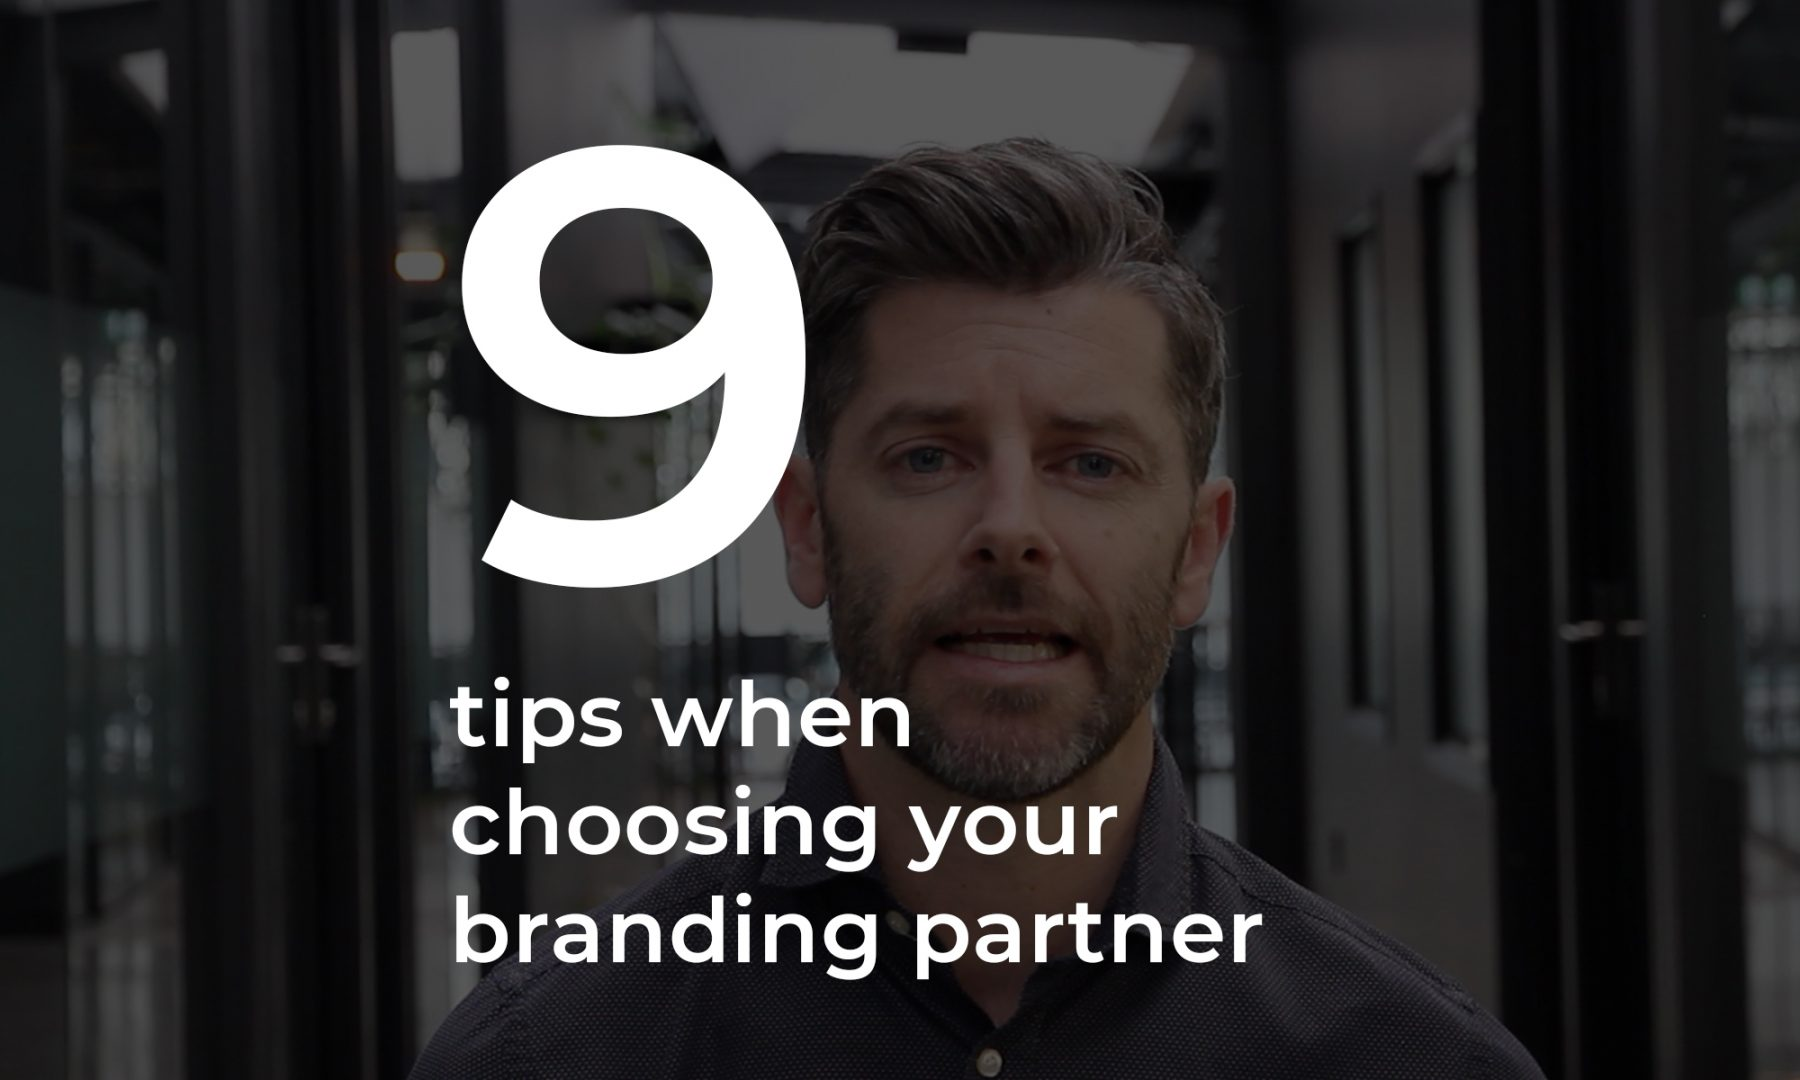 9 tips when choosing your branding partner